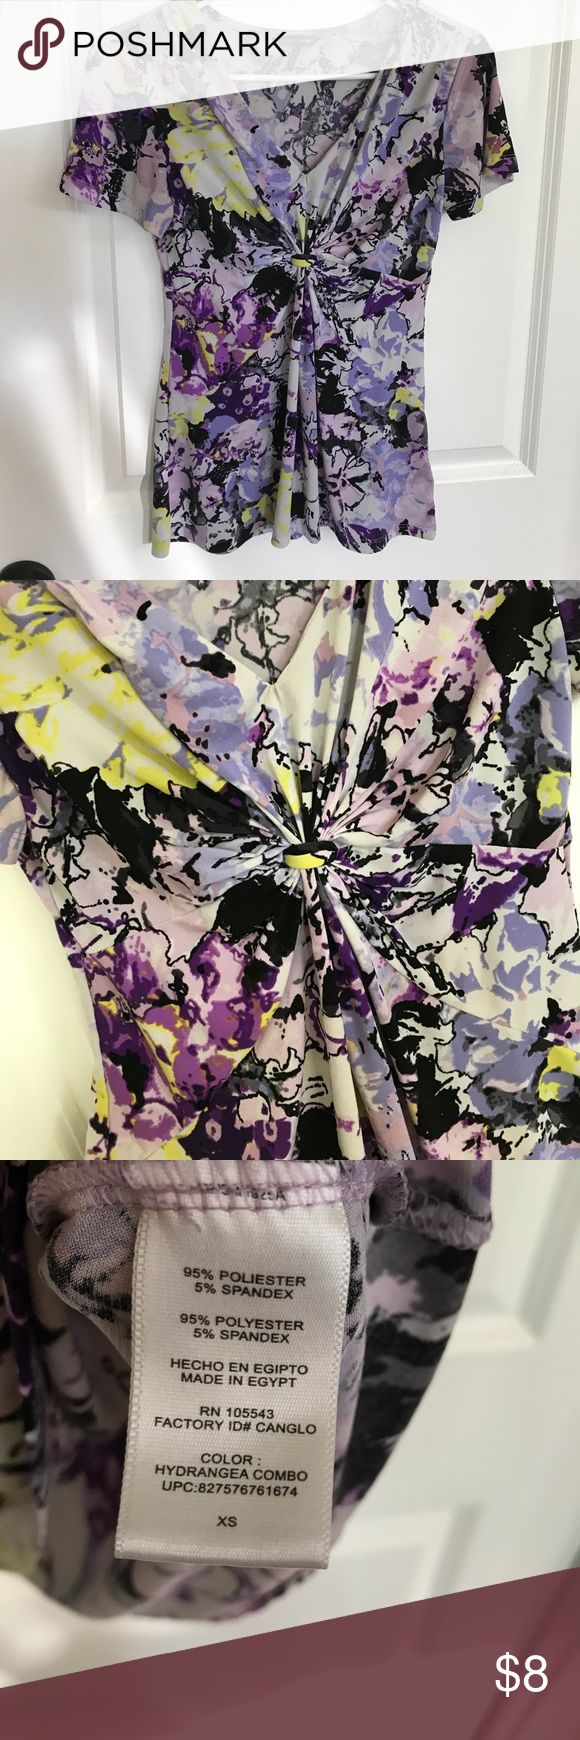 Daisy Fuentes purple knotted short sleeve top Gorgeous purple/yellow/black hydrangea print short sleeve top. Flattering knotted gather in front near busy. Size XS check out my other listings for more Daisy Fuentes! Daisy Fuentes Tops Blouses